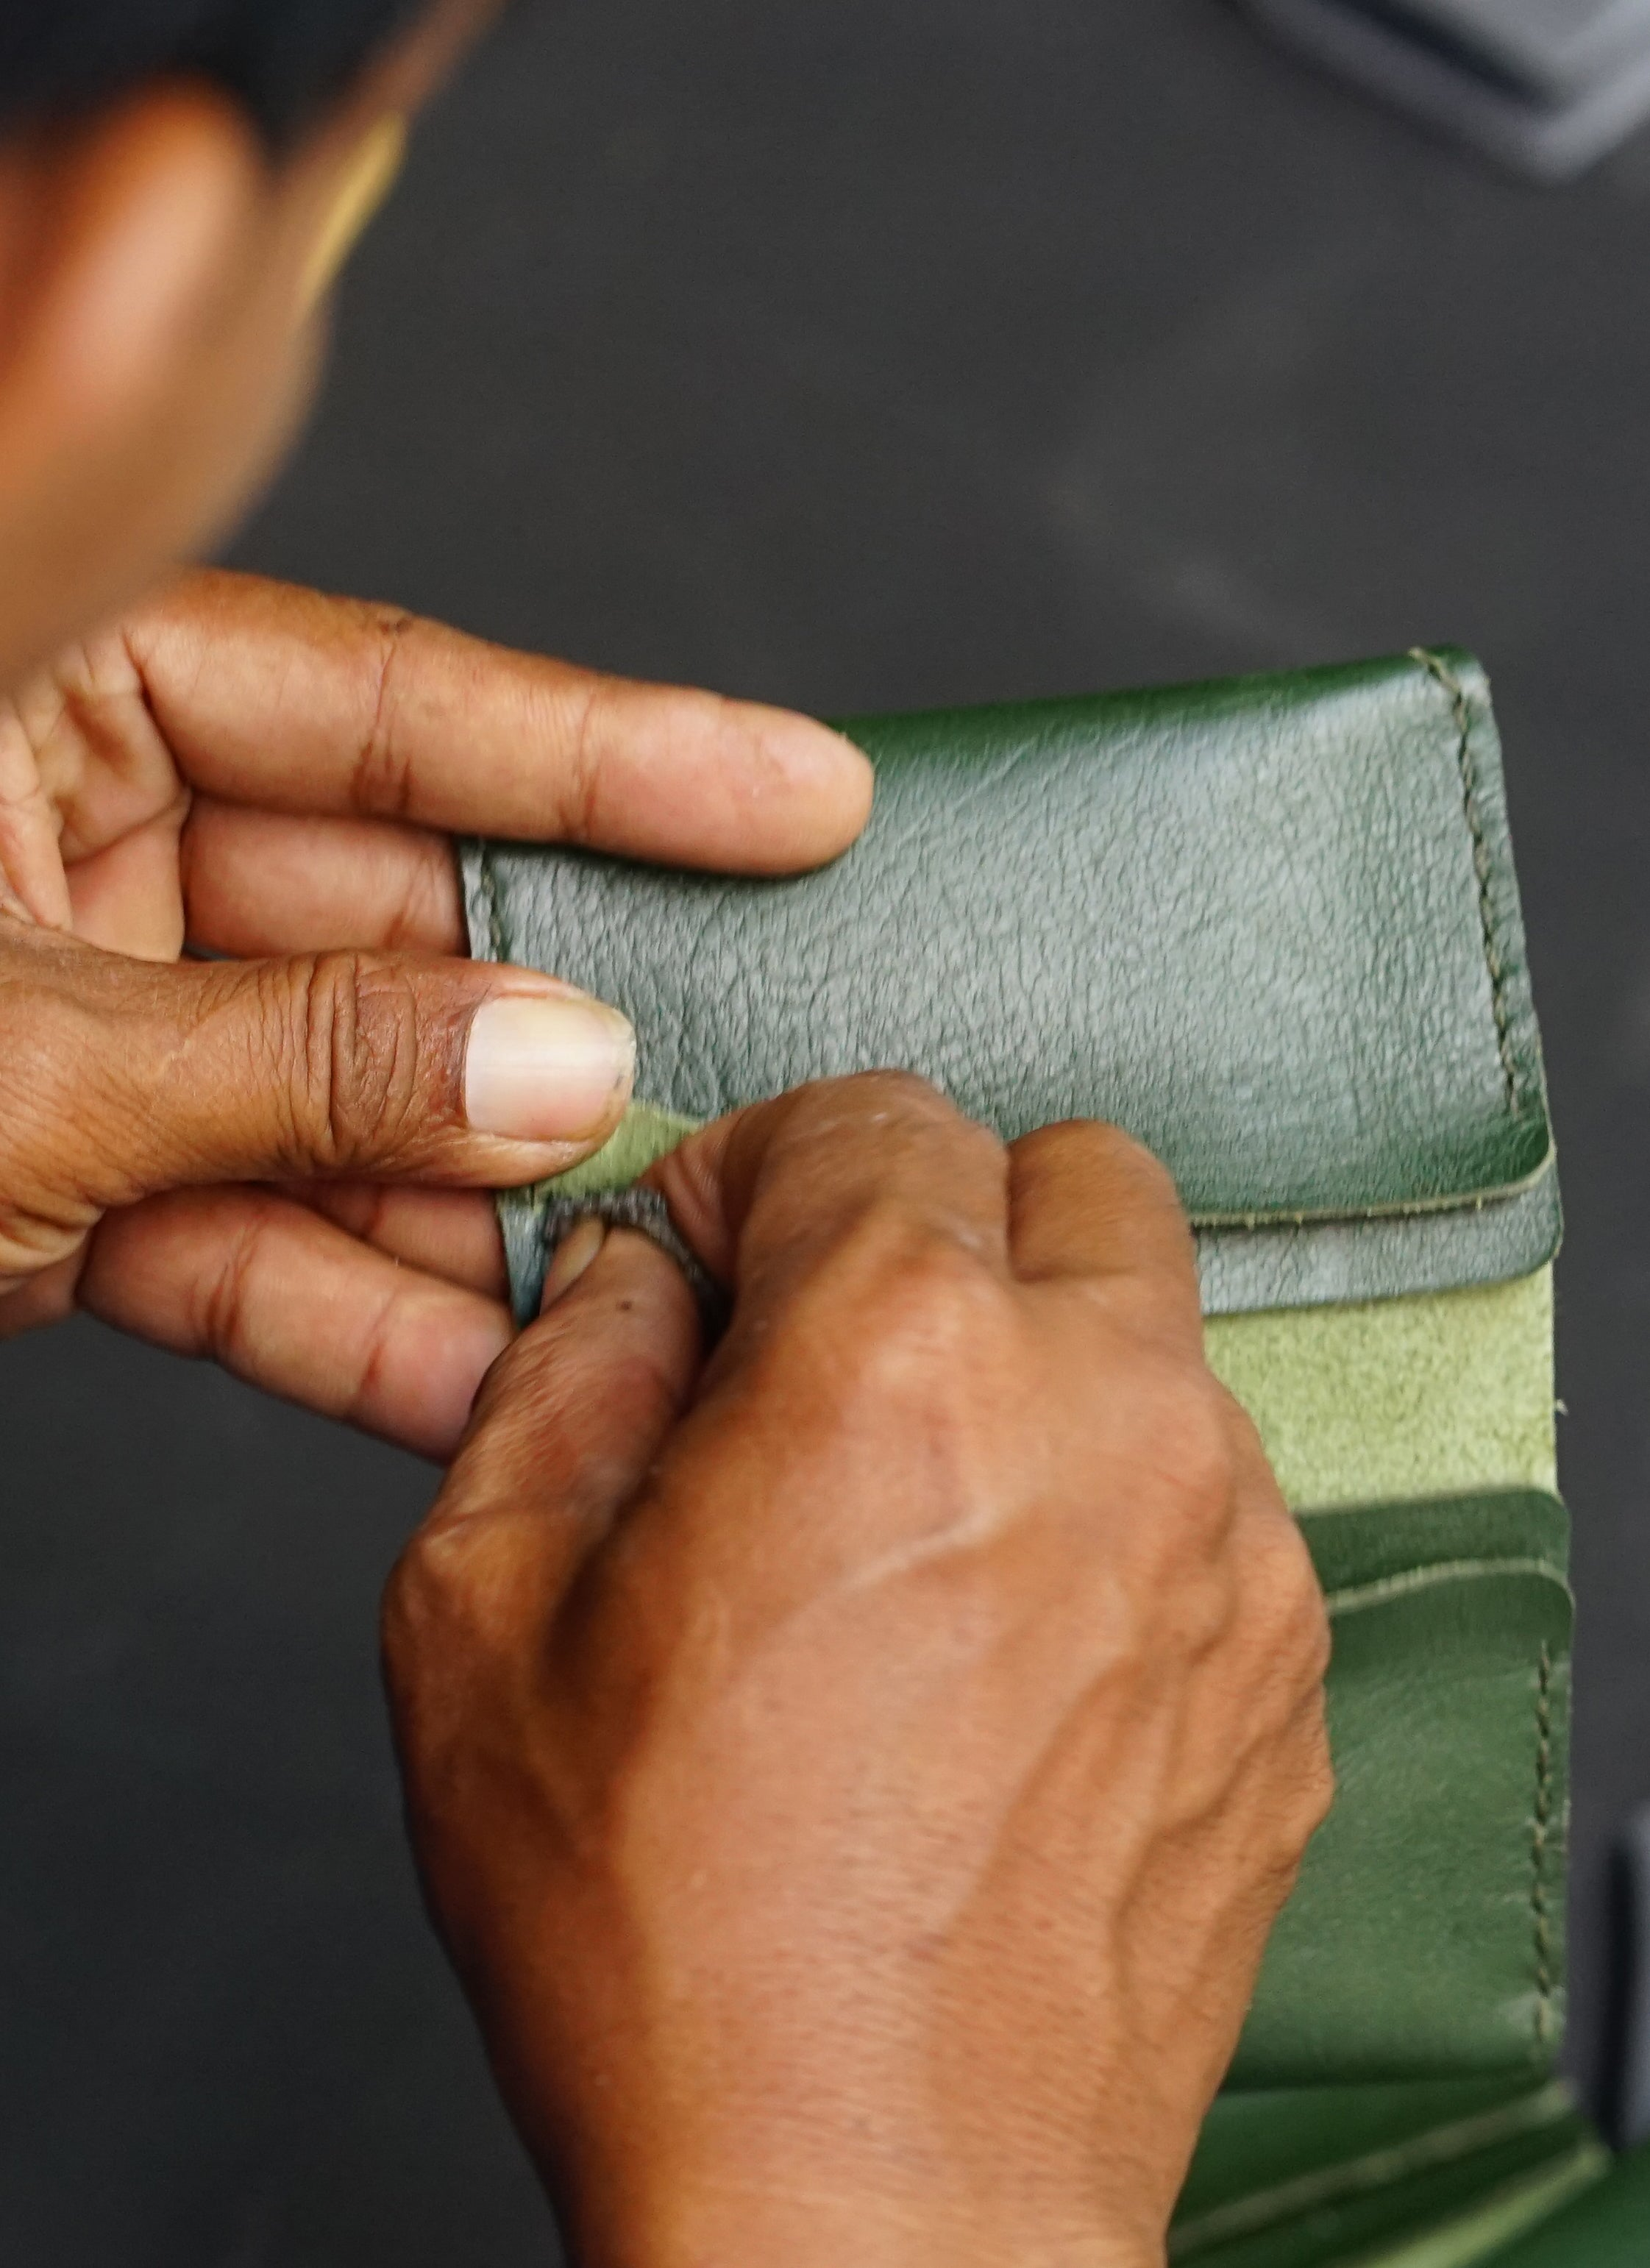 Artisan hand sewing the pocket seams of an olive card case.